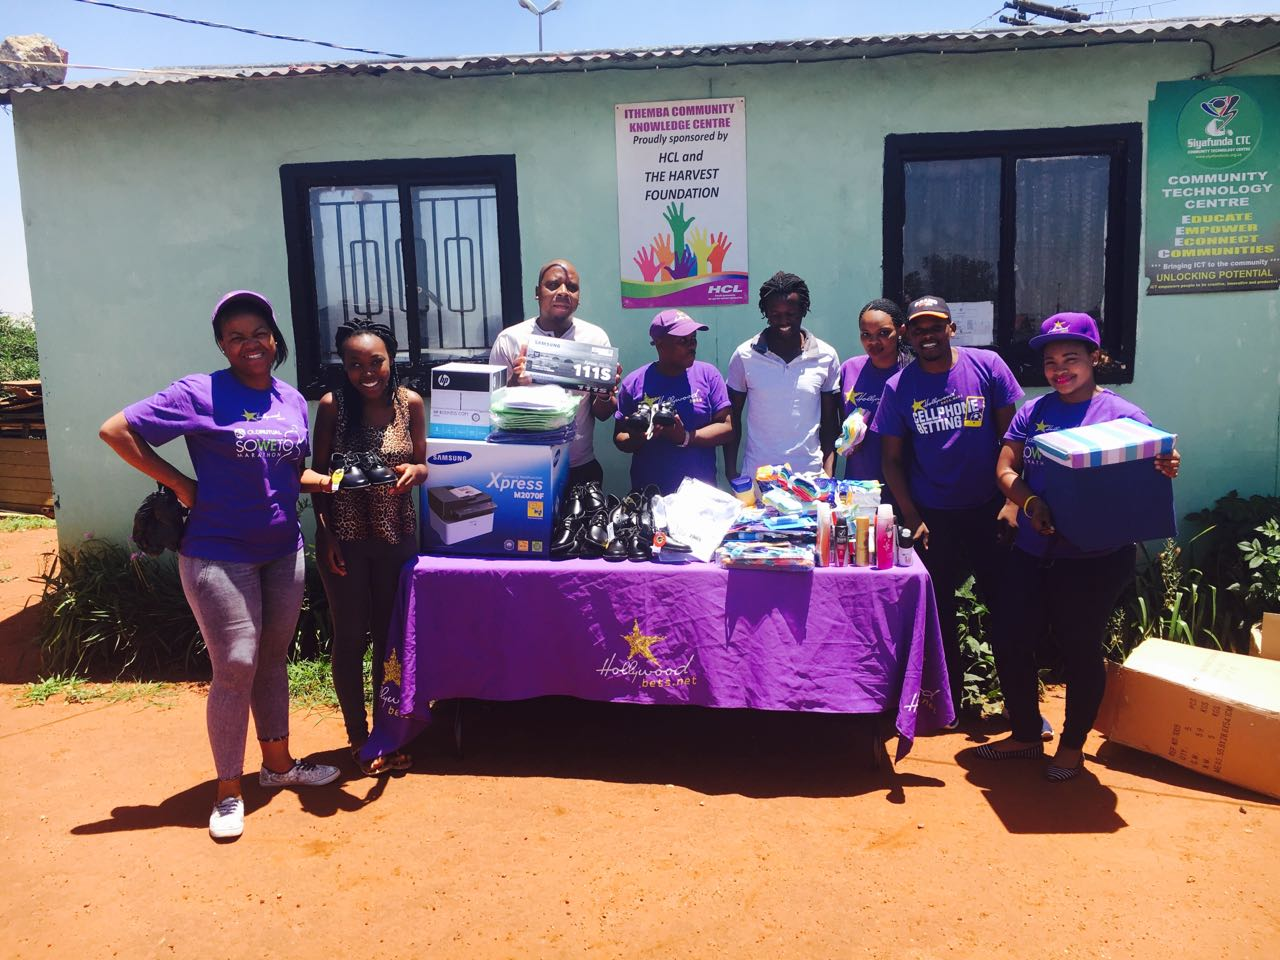 Ithemba Community Centre staff members were happy to receive a donation of school shoes, a printer and other essential items from Hollywoodbets Kempton Park